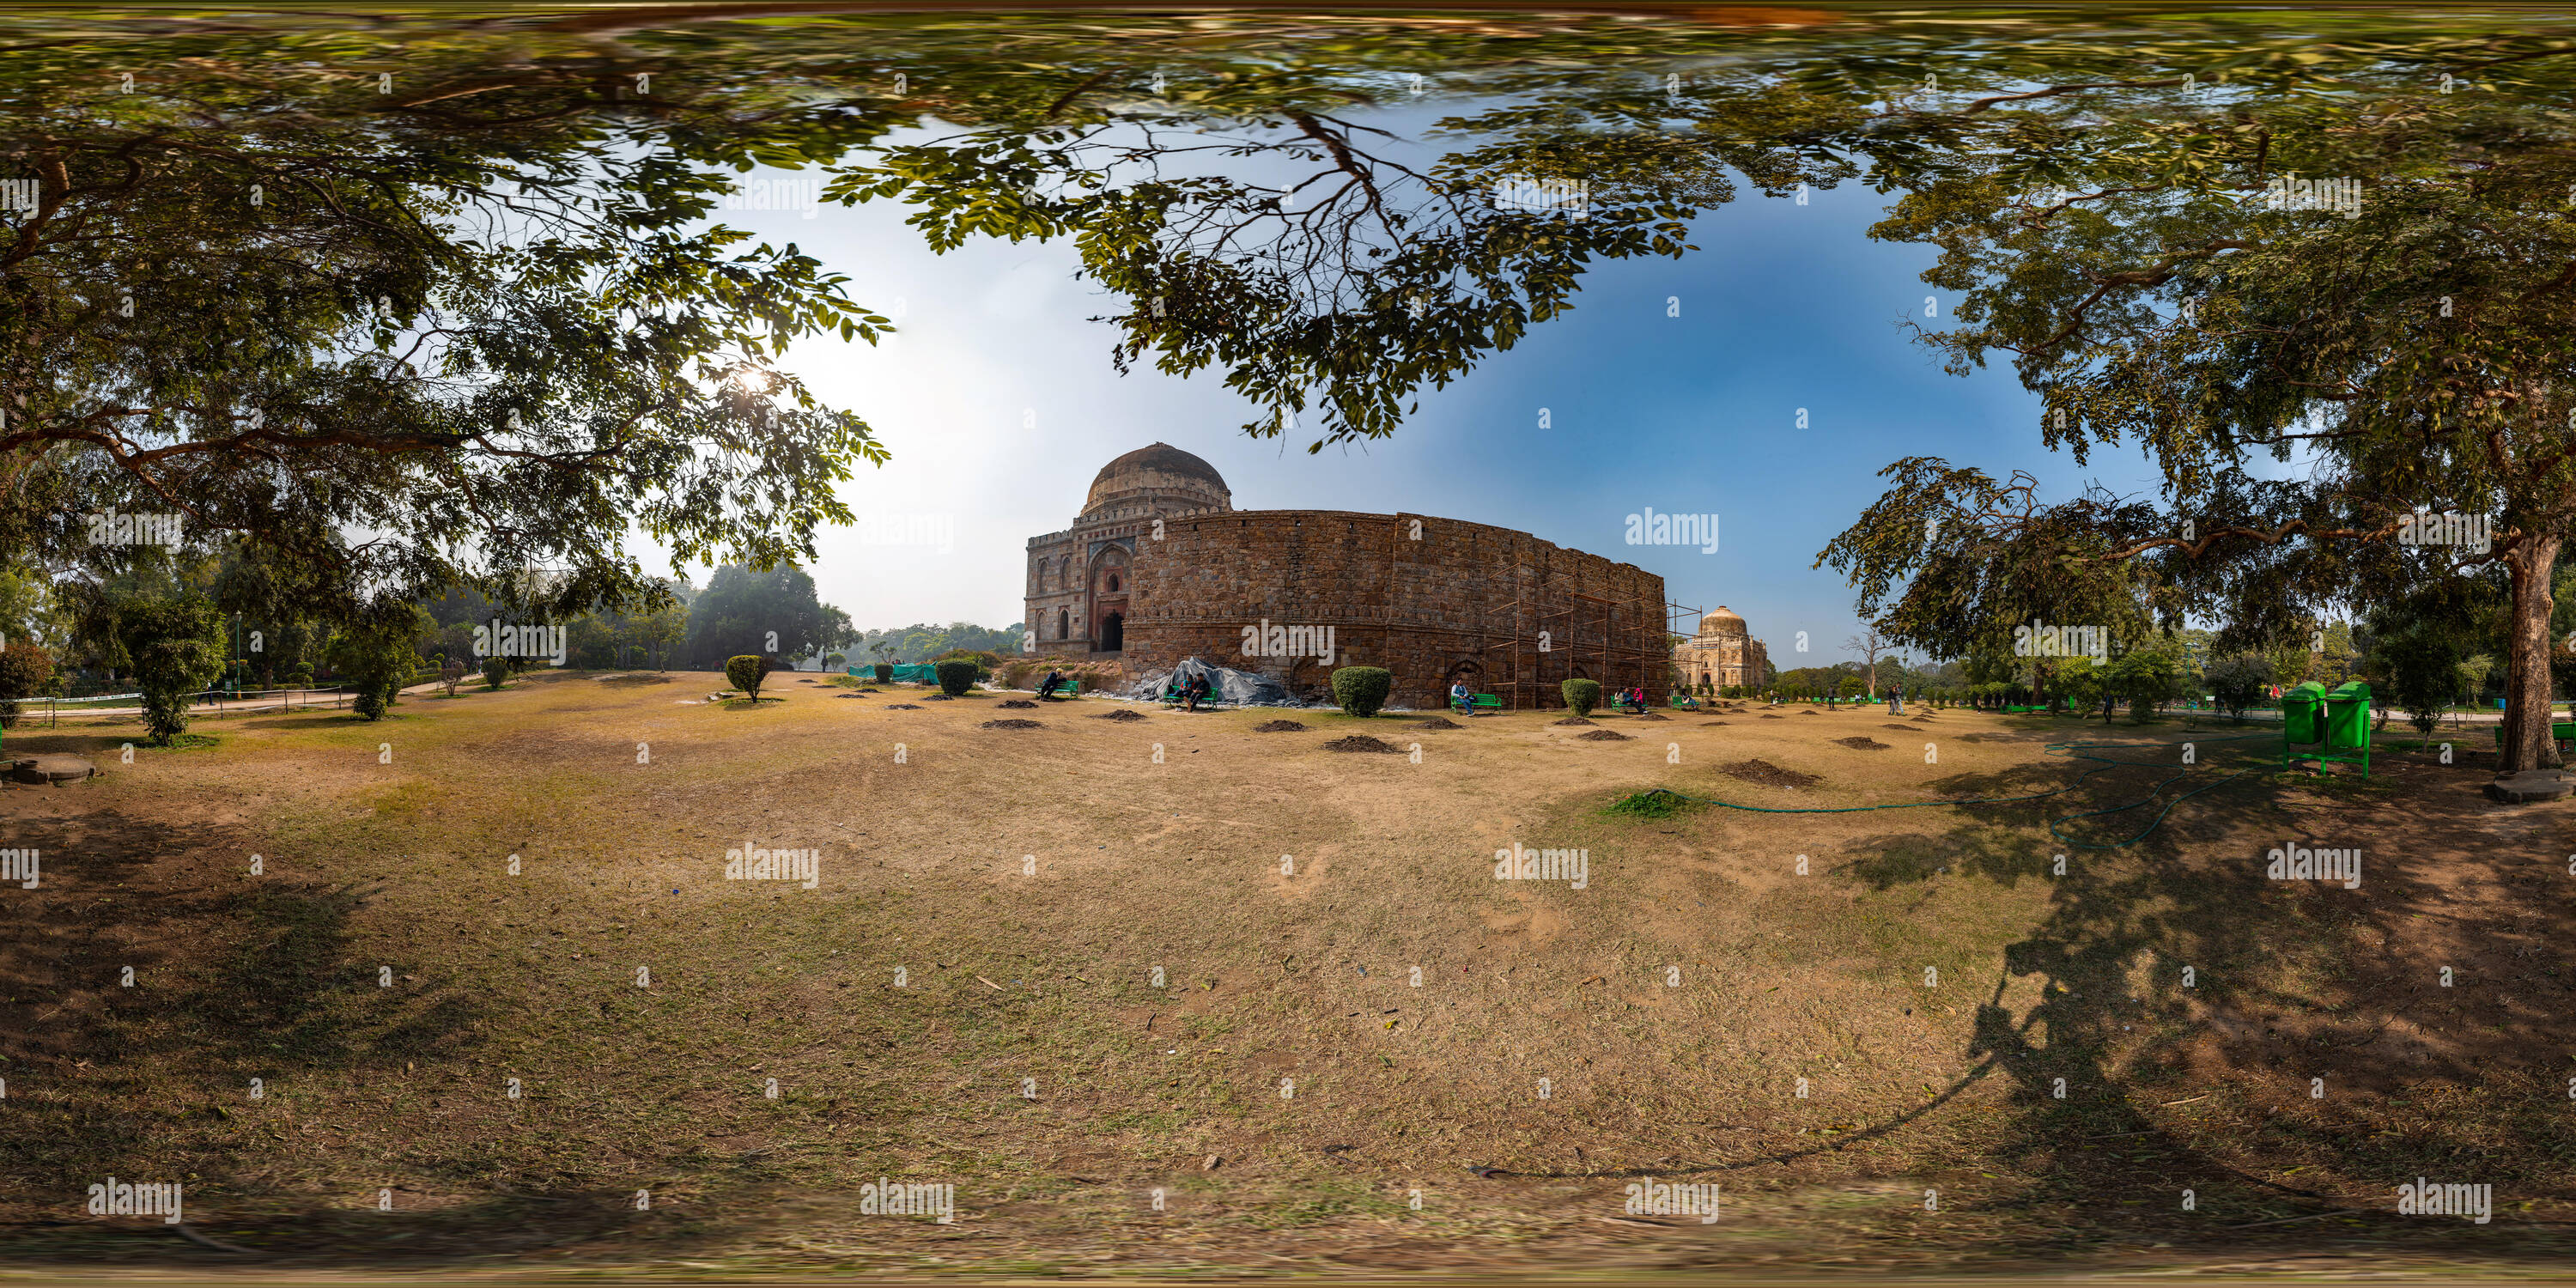 360 degree panoramic view of 360 View in Lodi Gardens in New Delhi, India. Visible in this view is Bara Gumbad (Big Tomb) with Sheesh Gumbad slightly further towards the right.